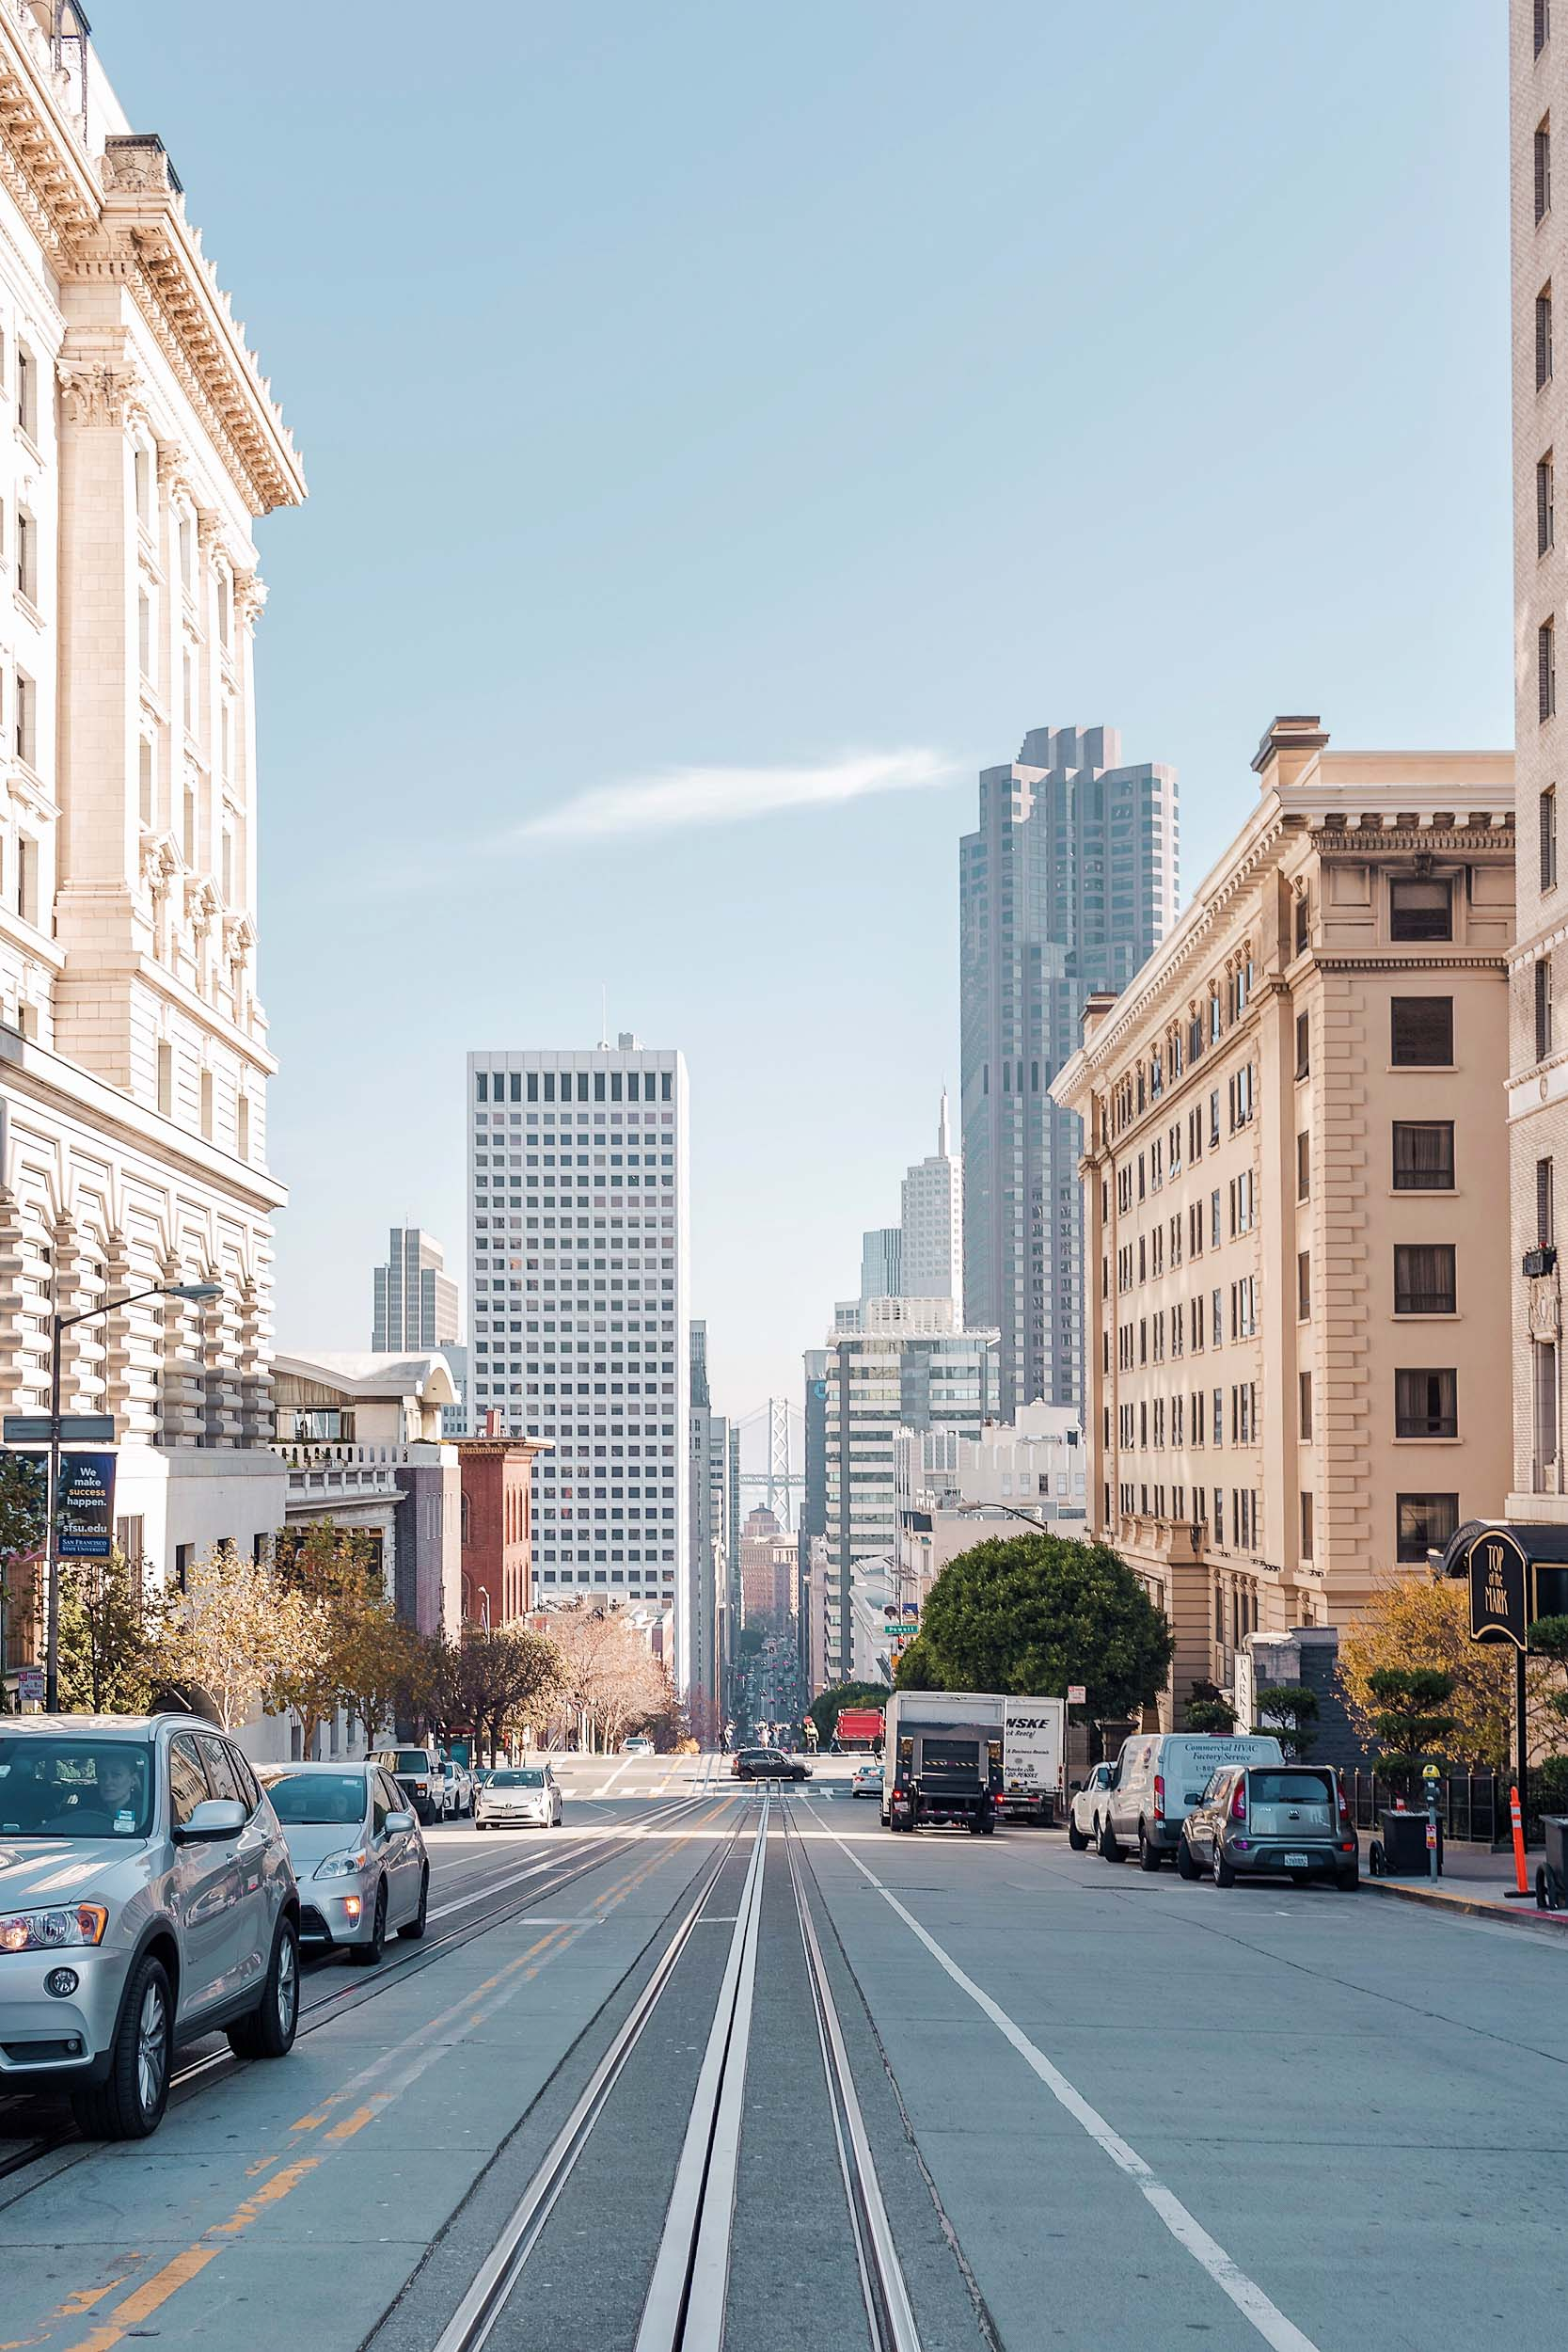 Fairmont San Francisco is centrally located on top of Nob Hill, offering beautiful panoramic city views.  It's the only spot in SF where all of the cable car lines meet!